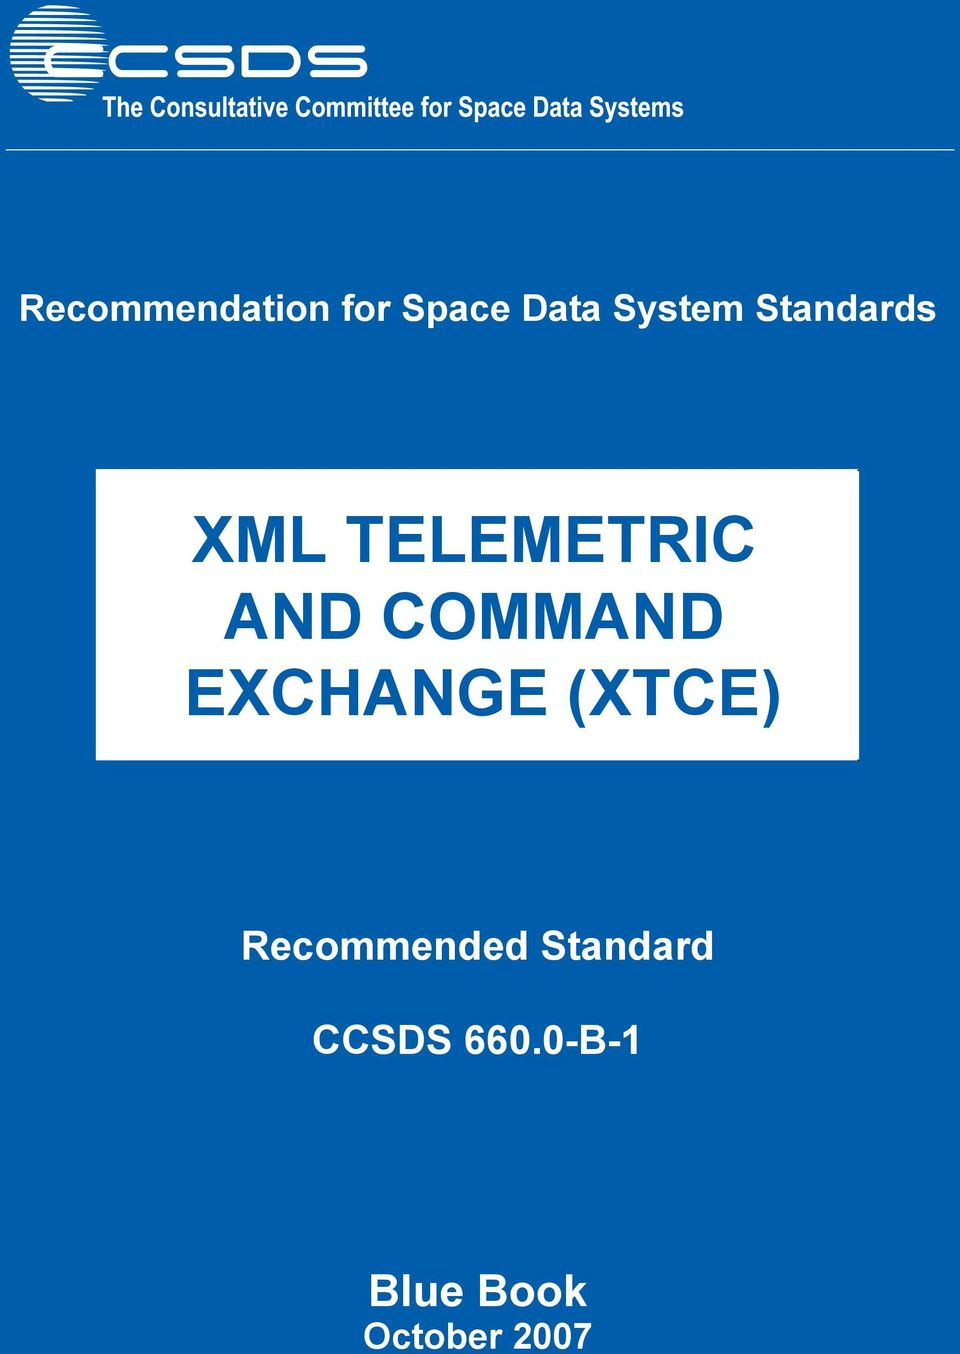 EXCHANGE (XTCE) Recommended Standard